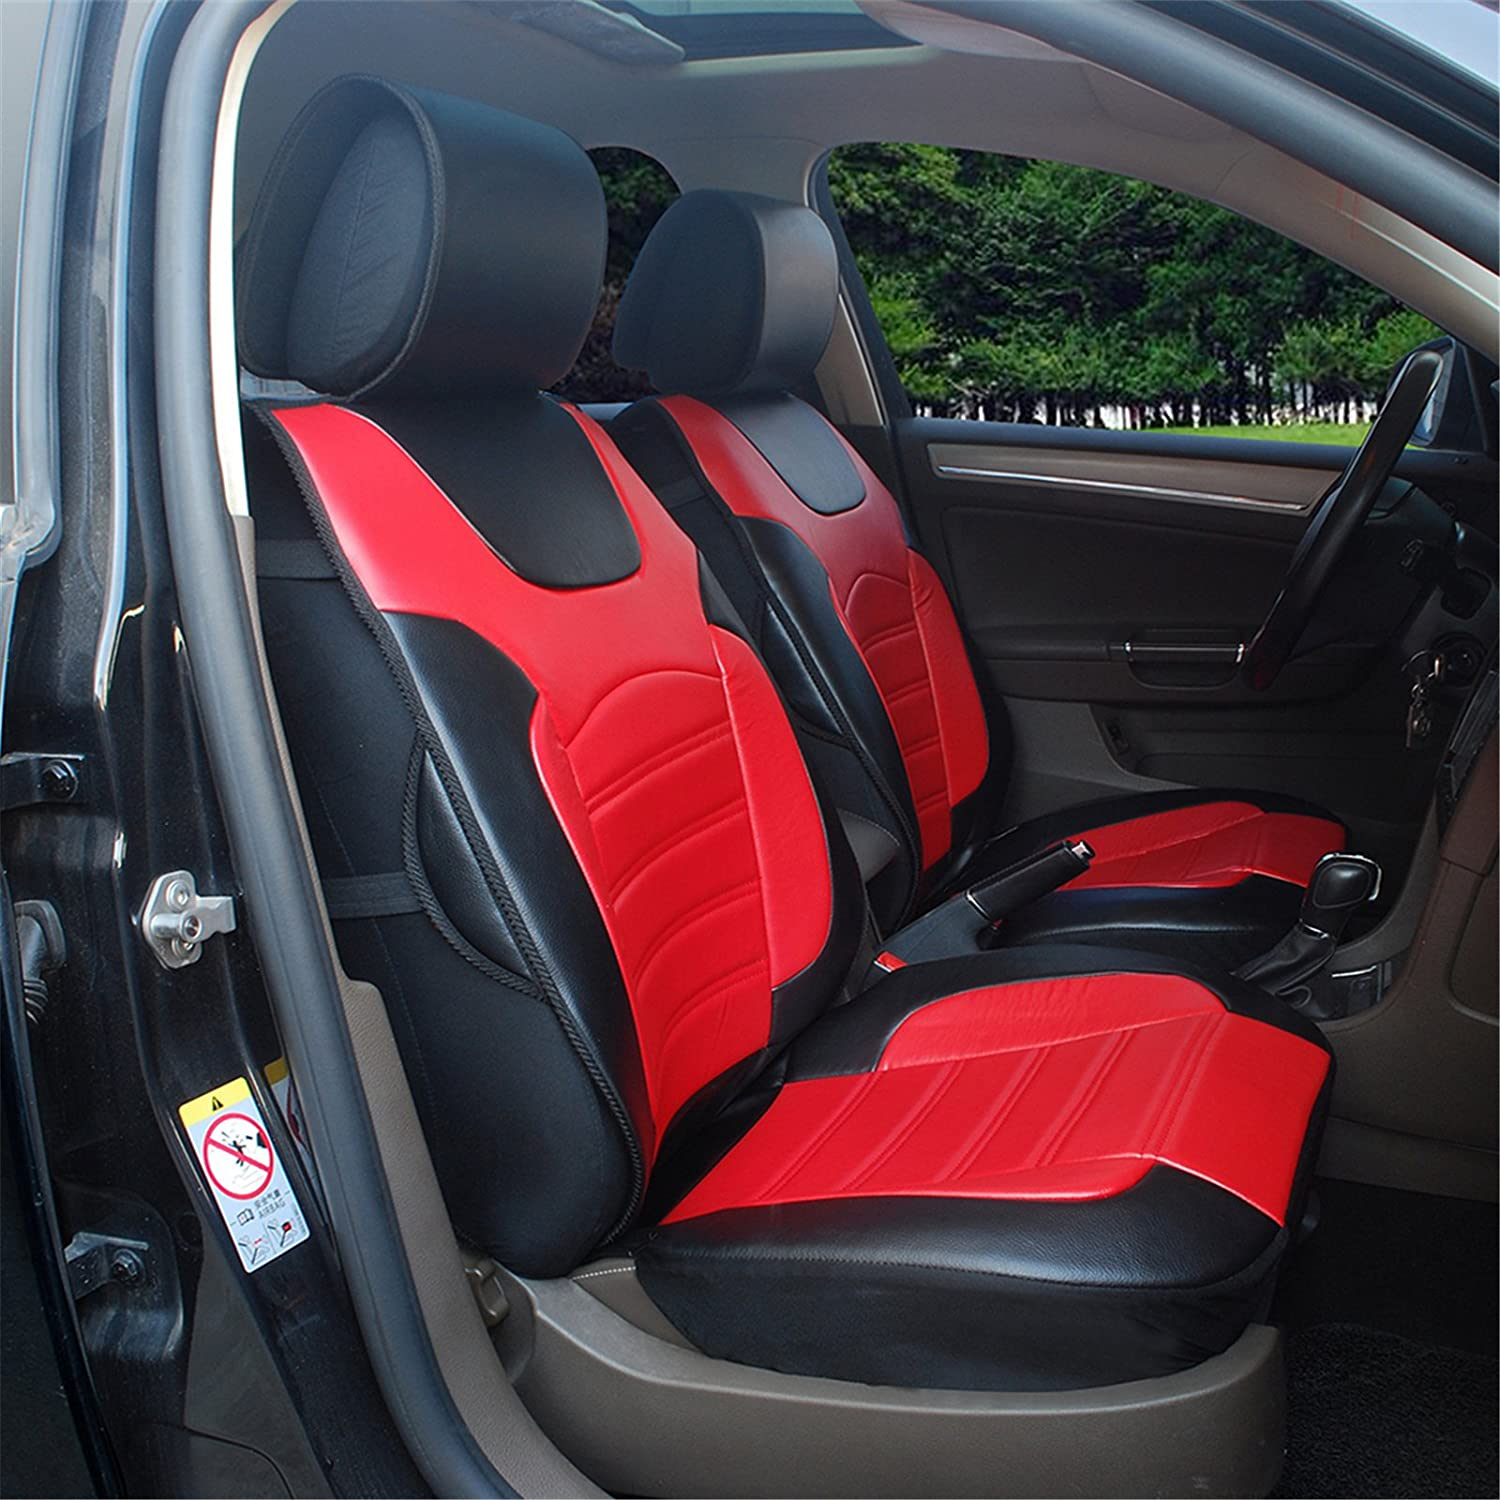 Amazon.com: 180208S Black/Red-2 Front Car Seat Cover Cushions Leather Like  Vinyl, Compatible to Dodge Charger Challenger Dart 2017-2007: Automotive